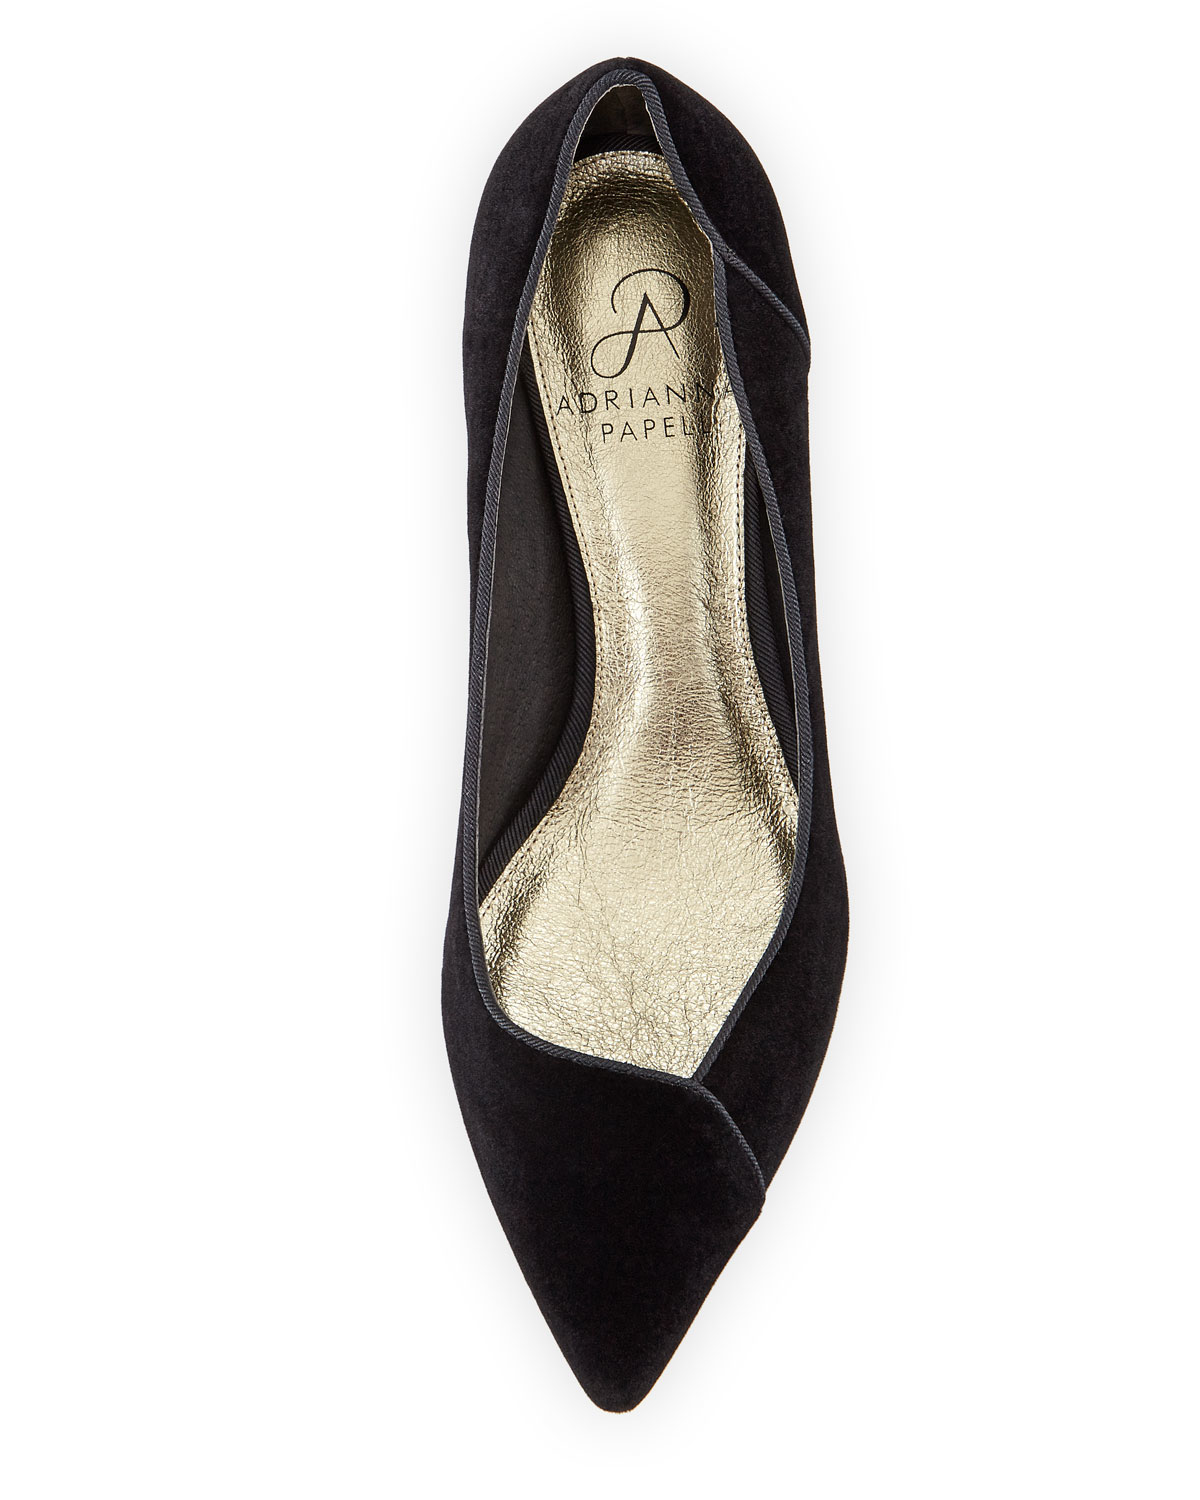 213cd5943d7 Women's Black Lydia Velvet Low-heel Evening Pump